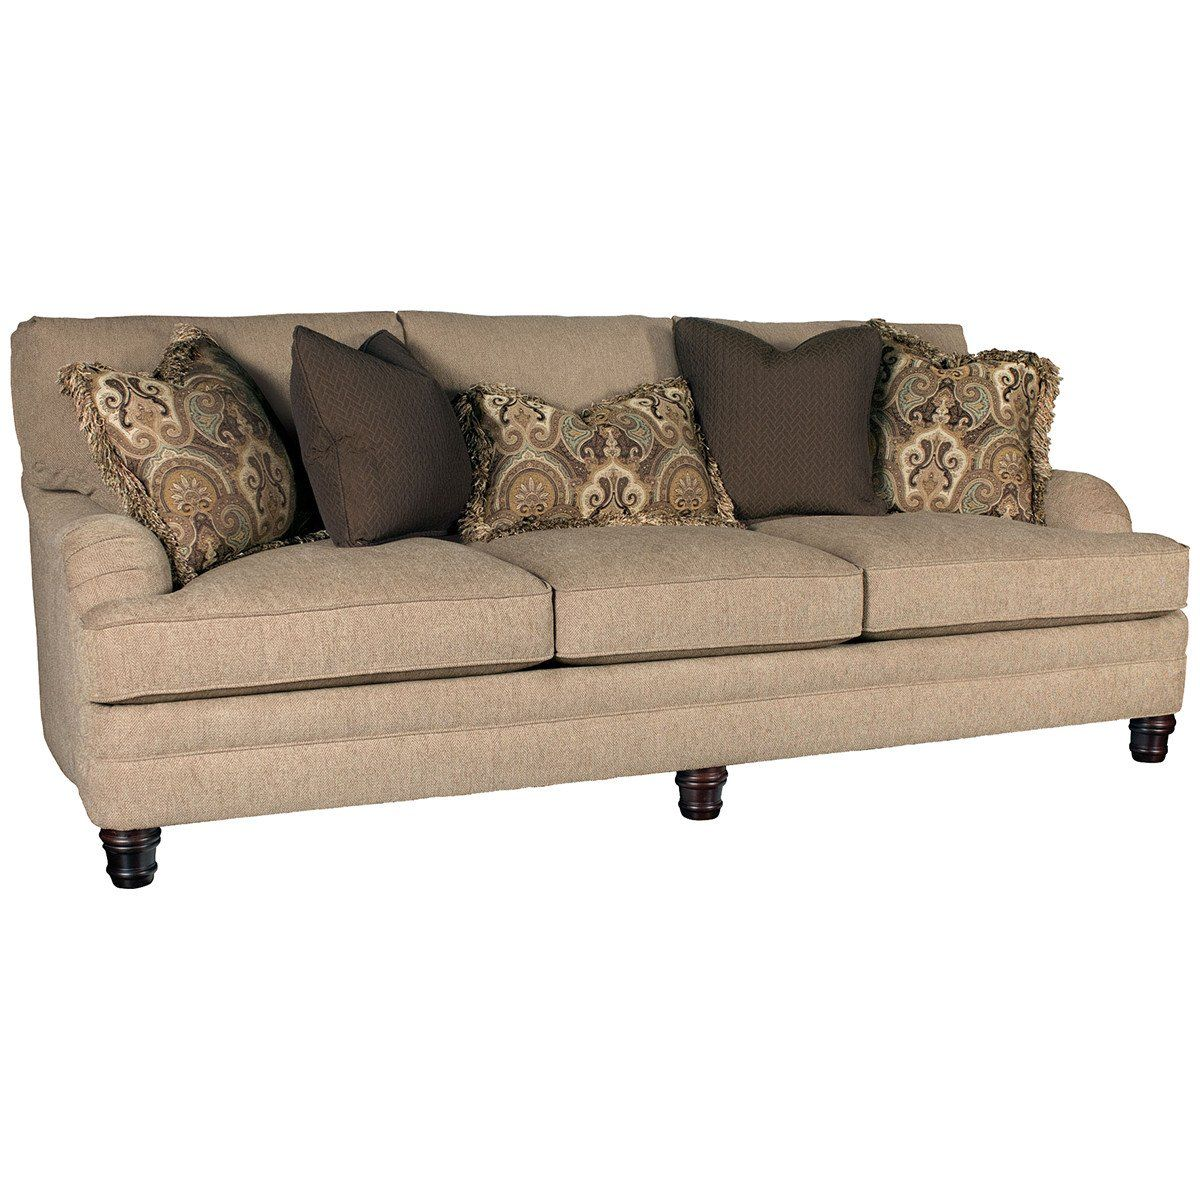 Fantastic Bernhardt Upholstery Tarleton Sofa 96 5 Products Sofa Home Interior And Landscaping Ponolsignezvosmurscom